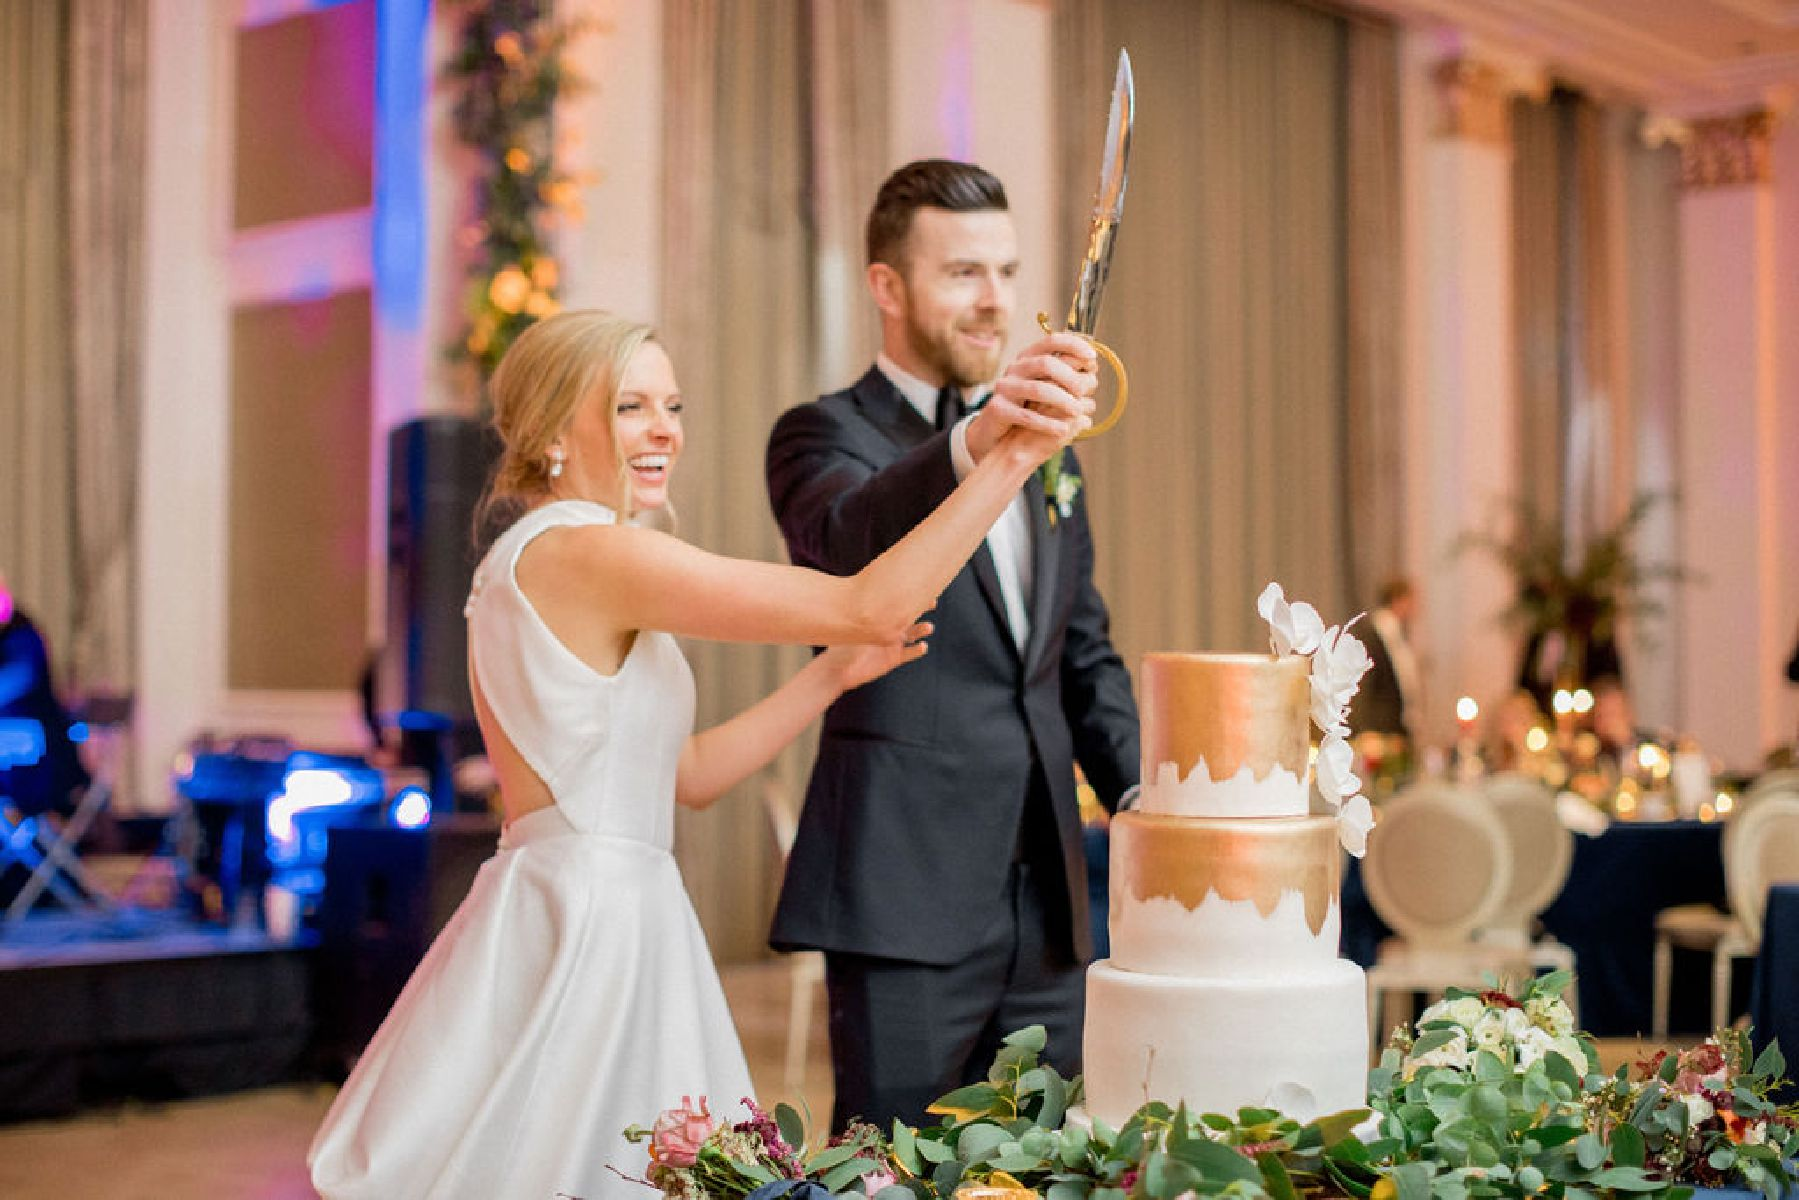 Bride and groom cutting cake with sword.